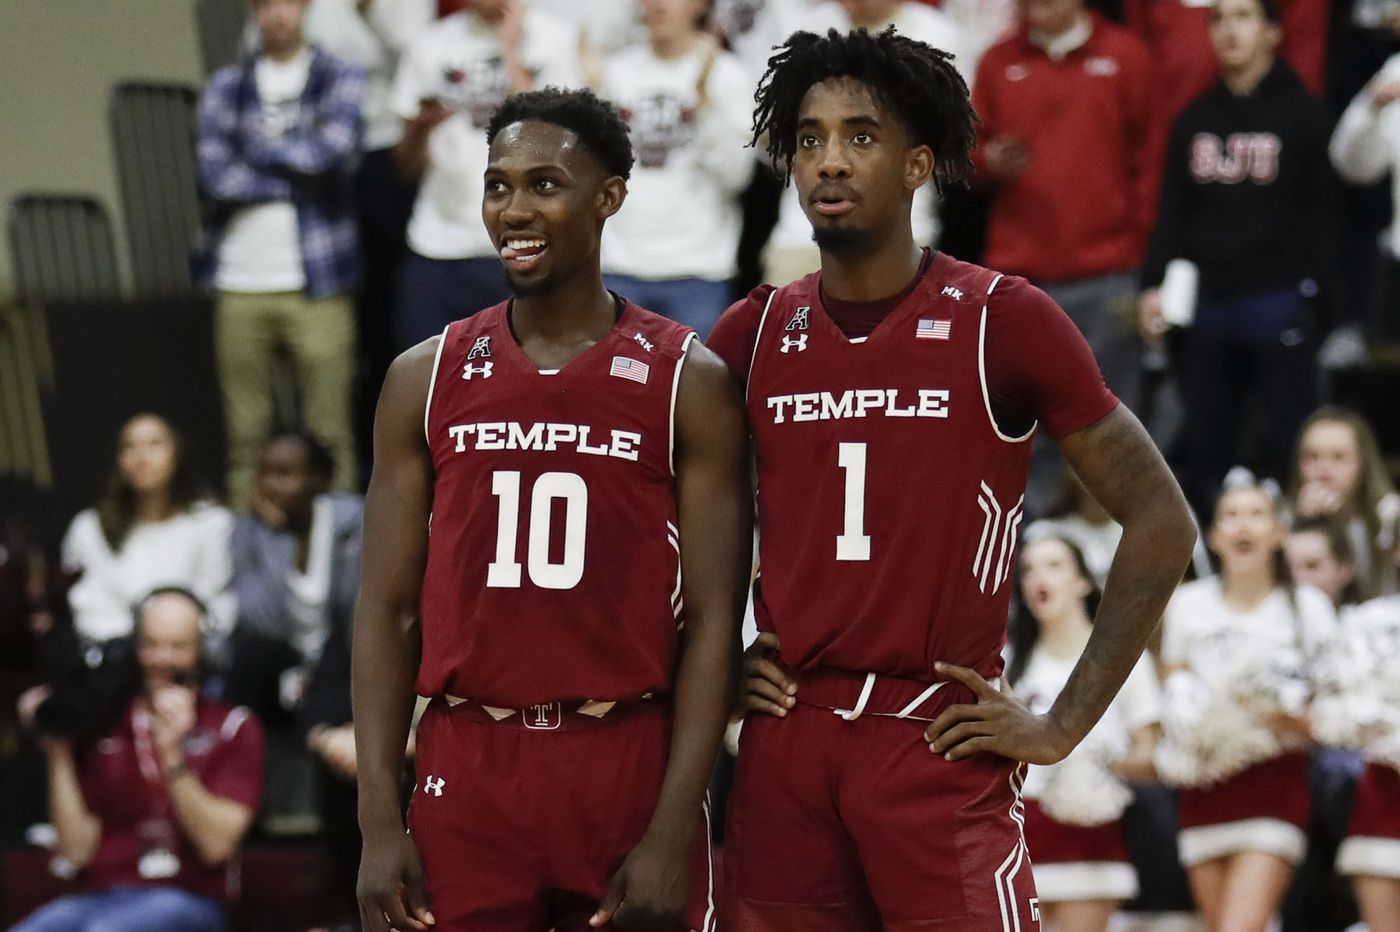 City 6 observations: Temple out of the gate fast